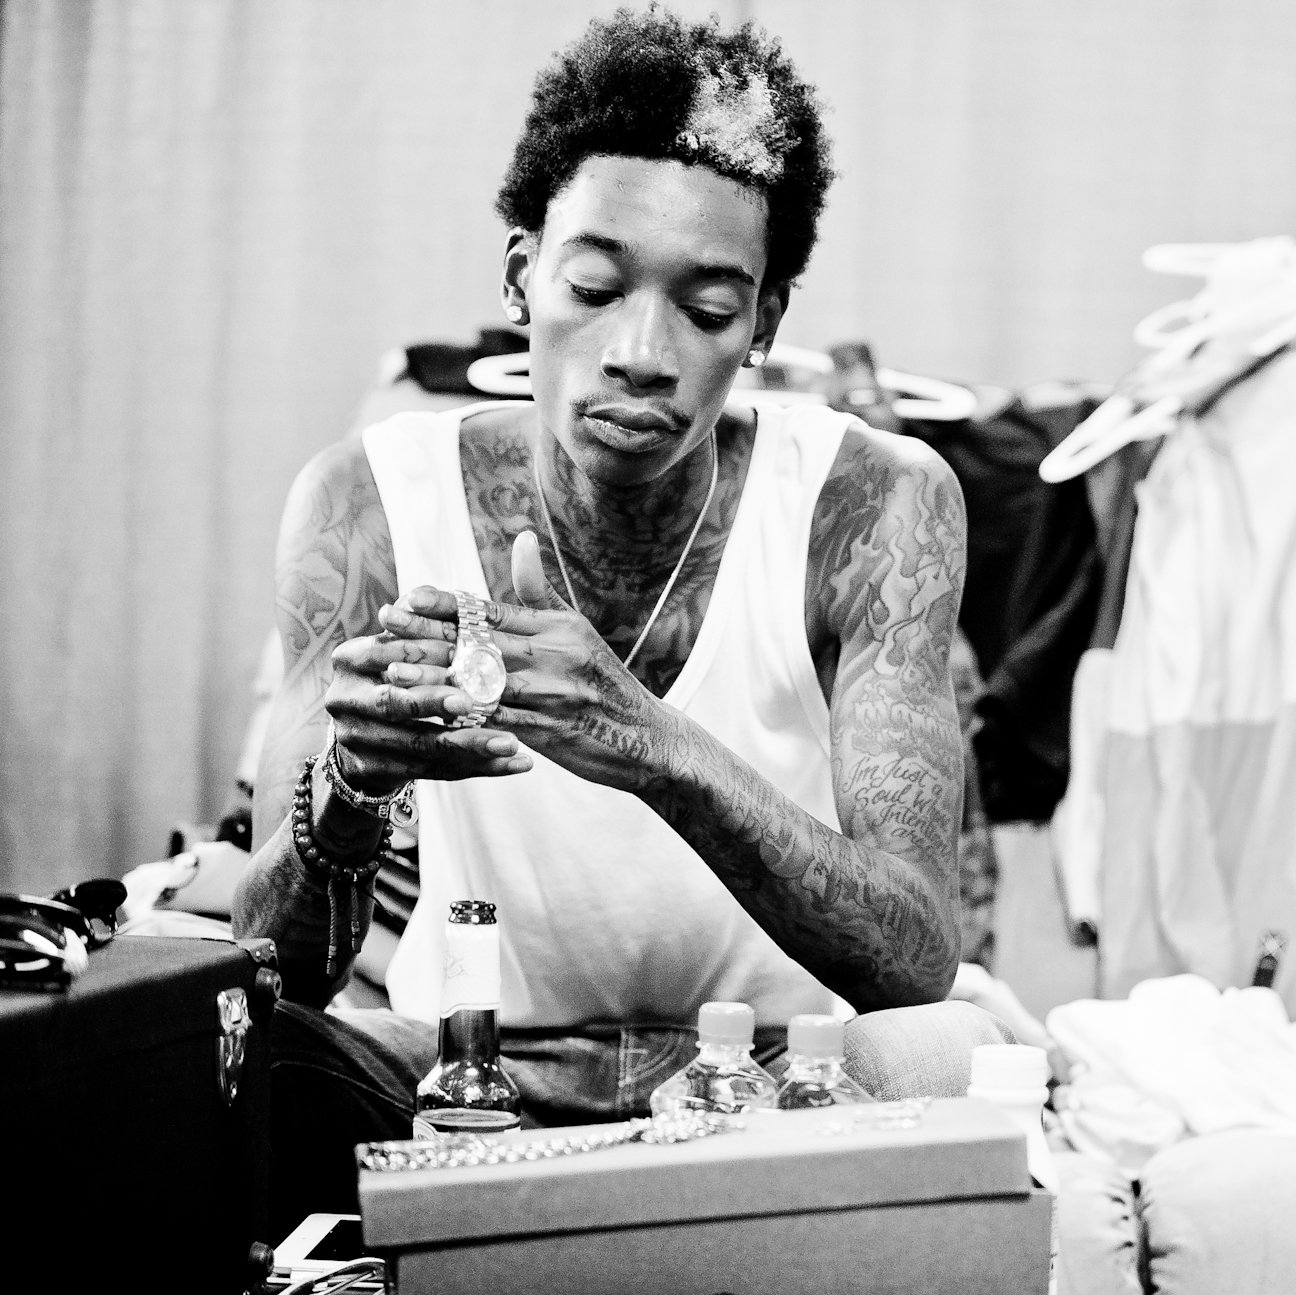 Pictures Of Snoop Dogg And Wiz Khalifa Wallpaper